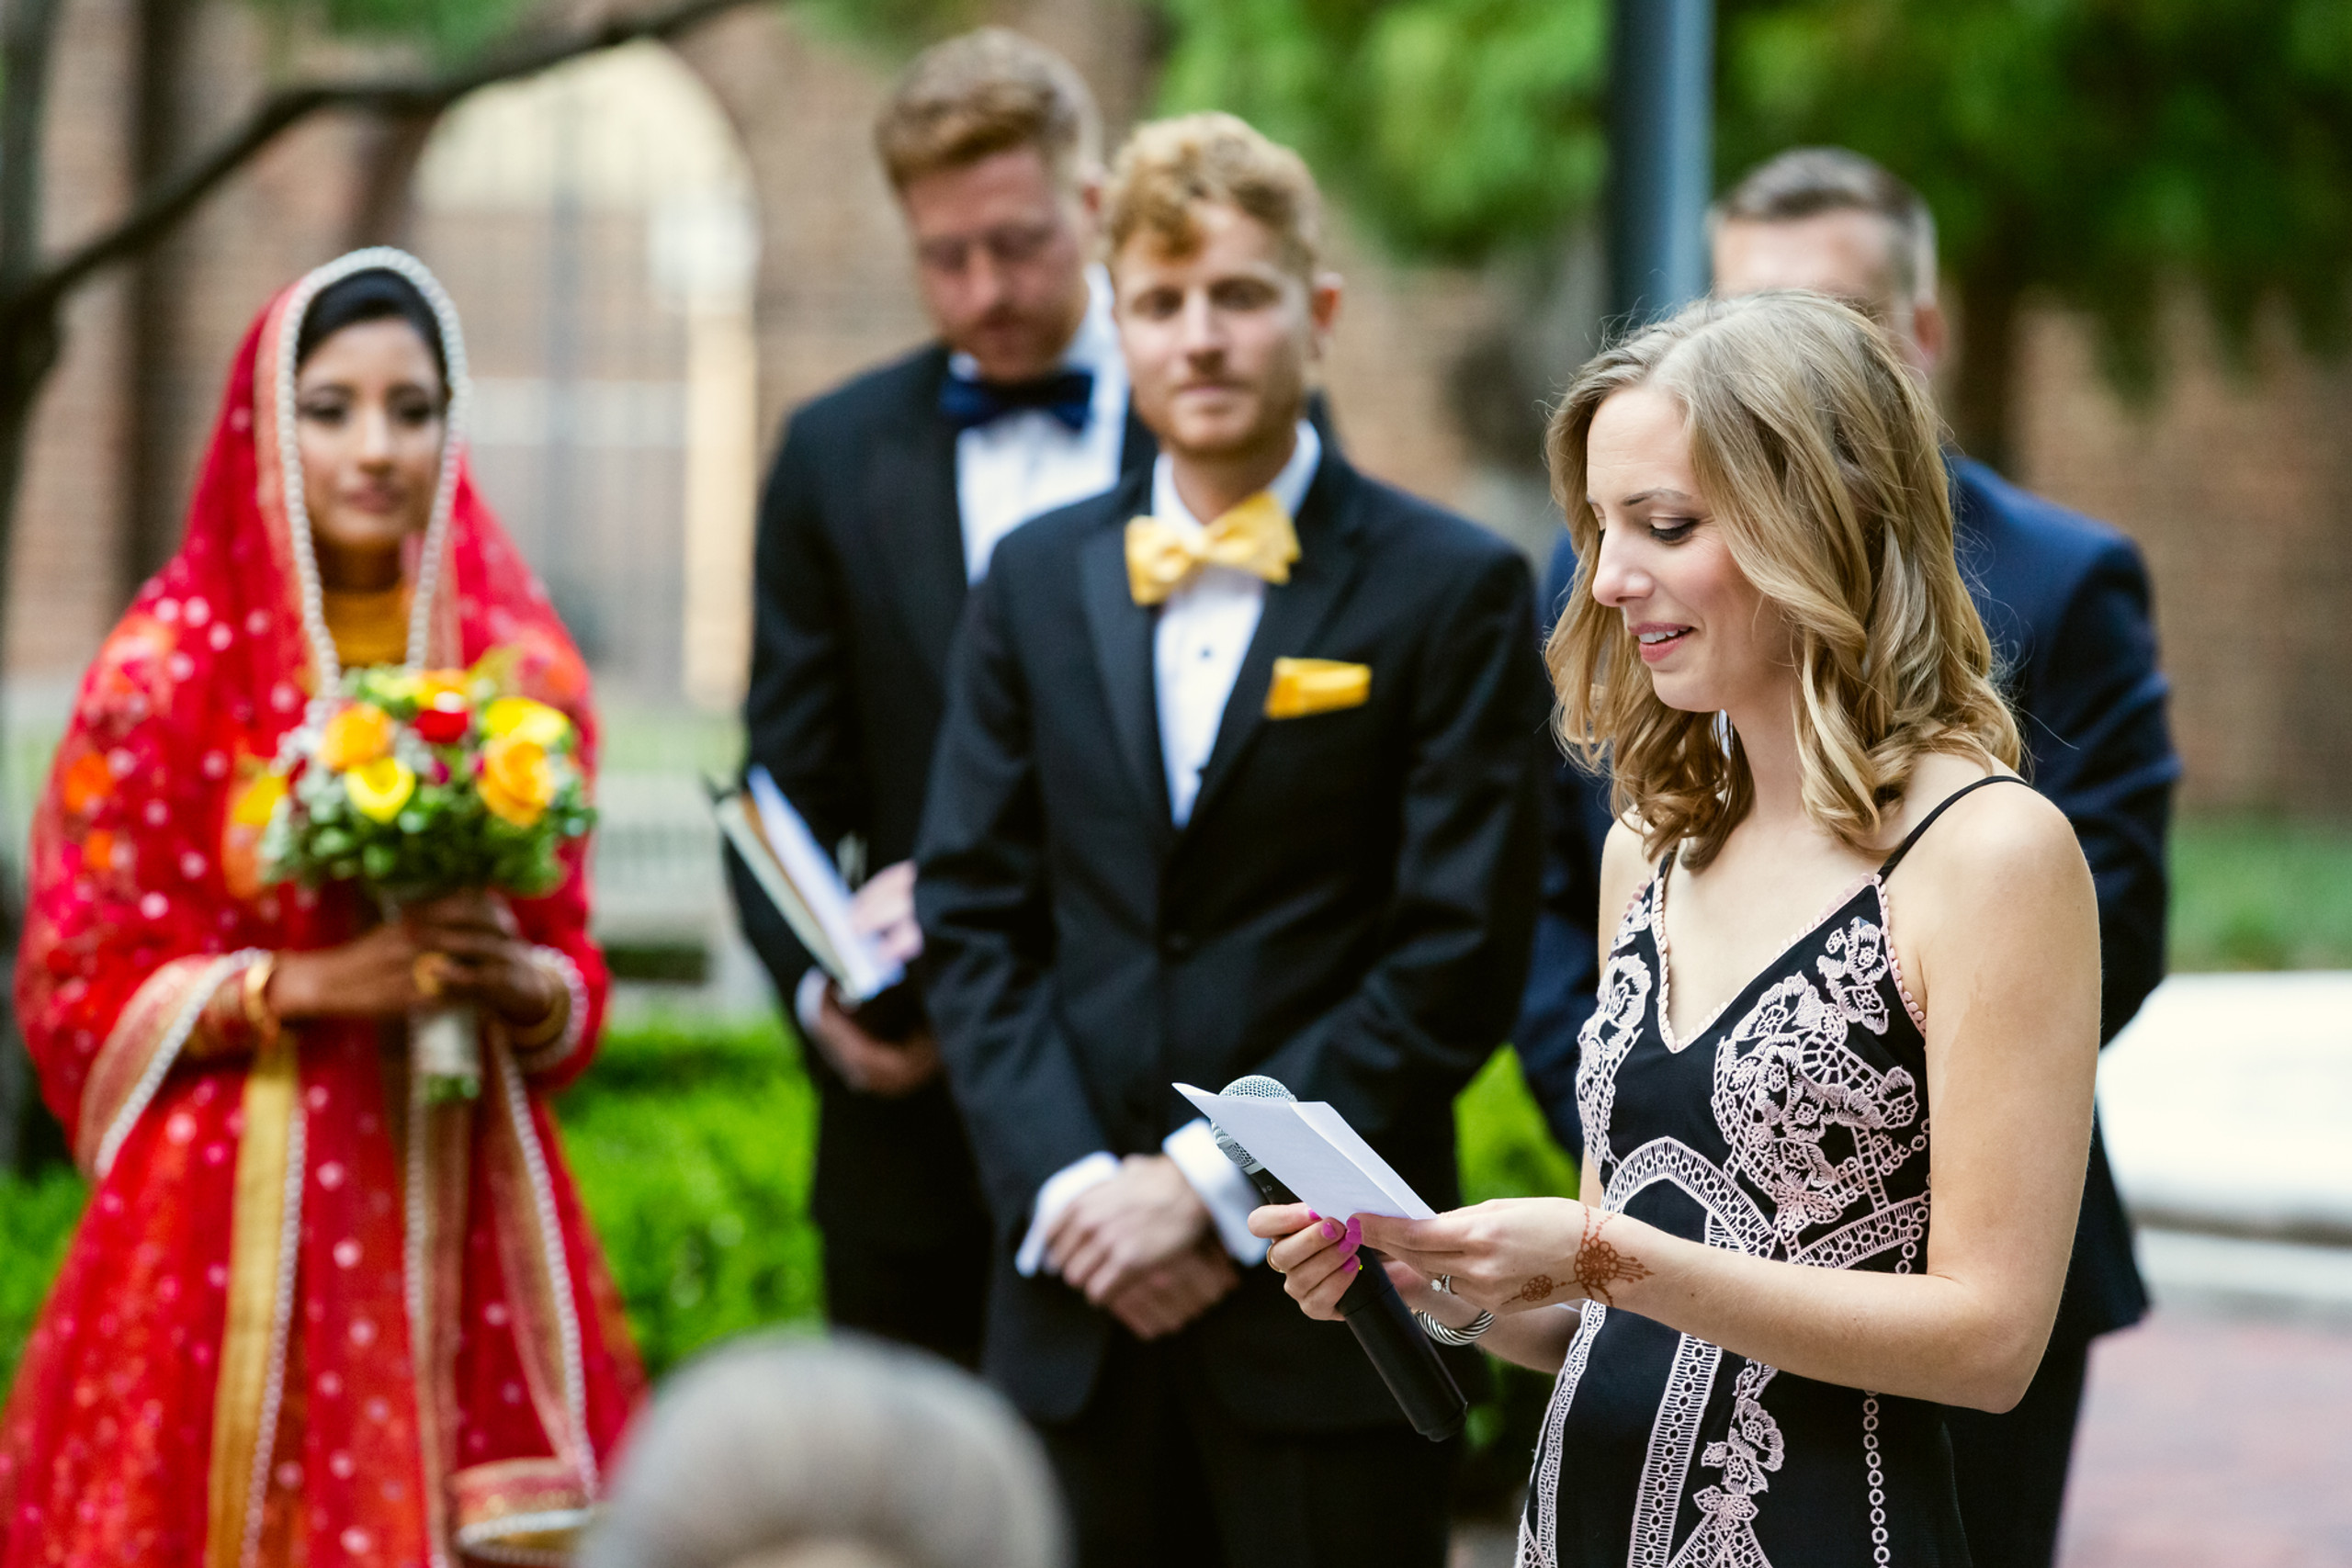 The groom's sister reads a passage during the wedding ceremony at the Penn Museum in Philadelphia, Pennsylvania.